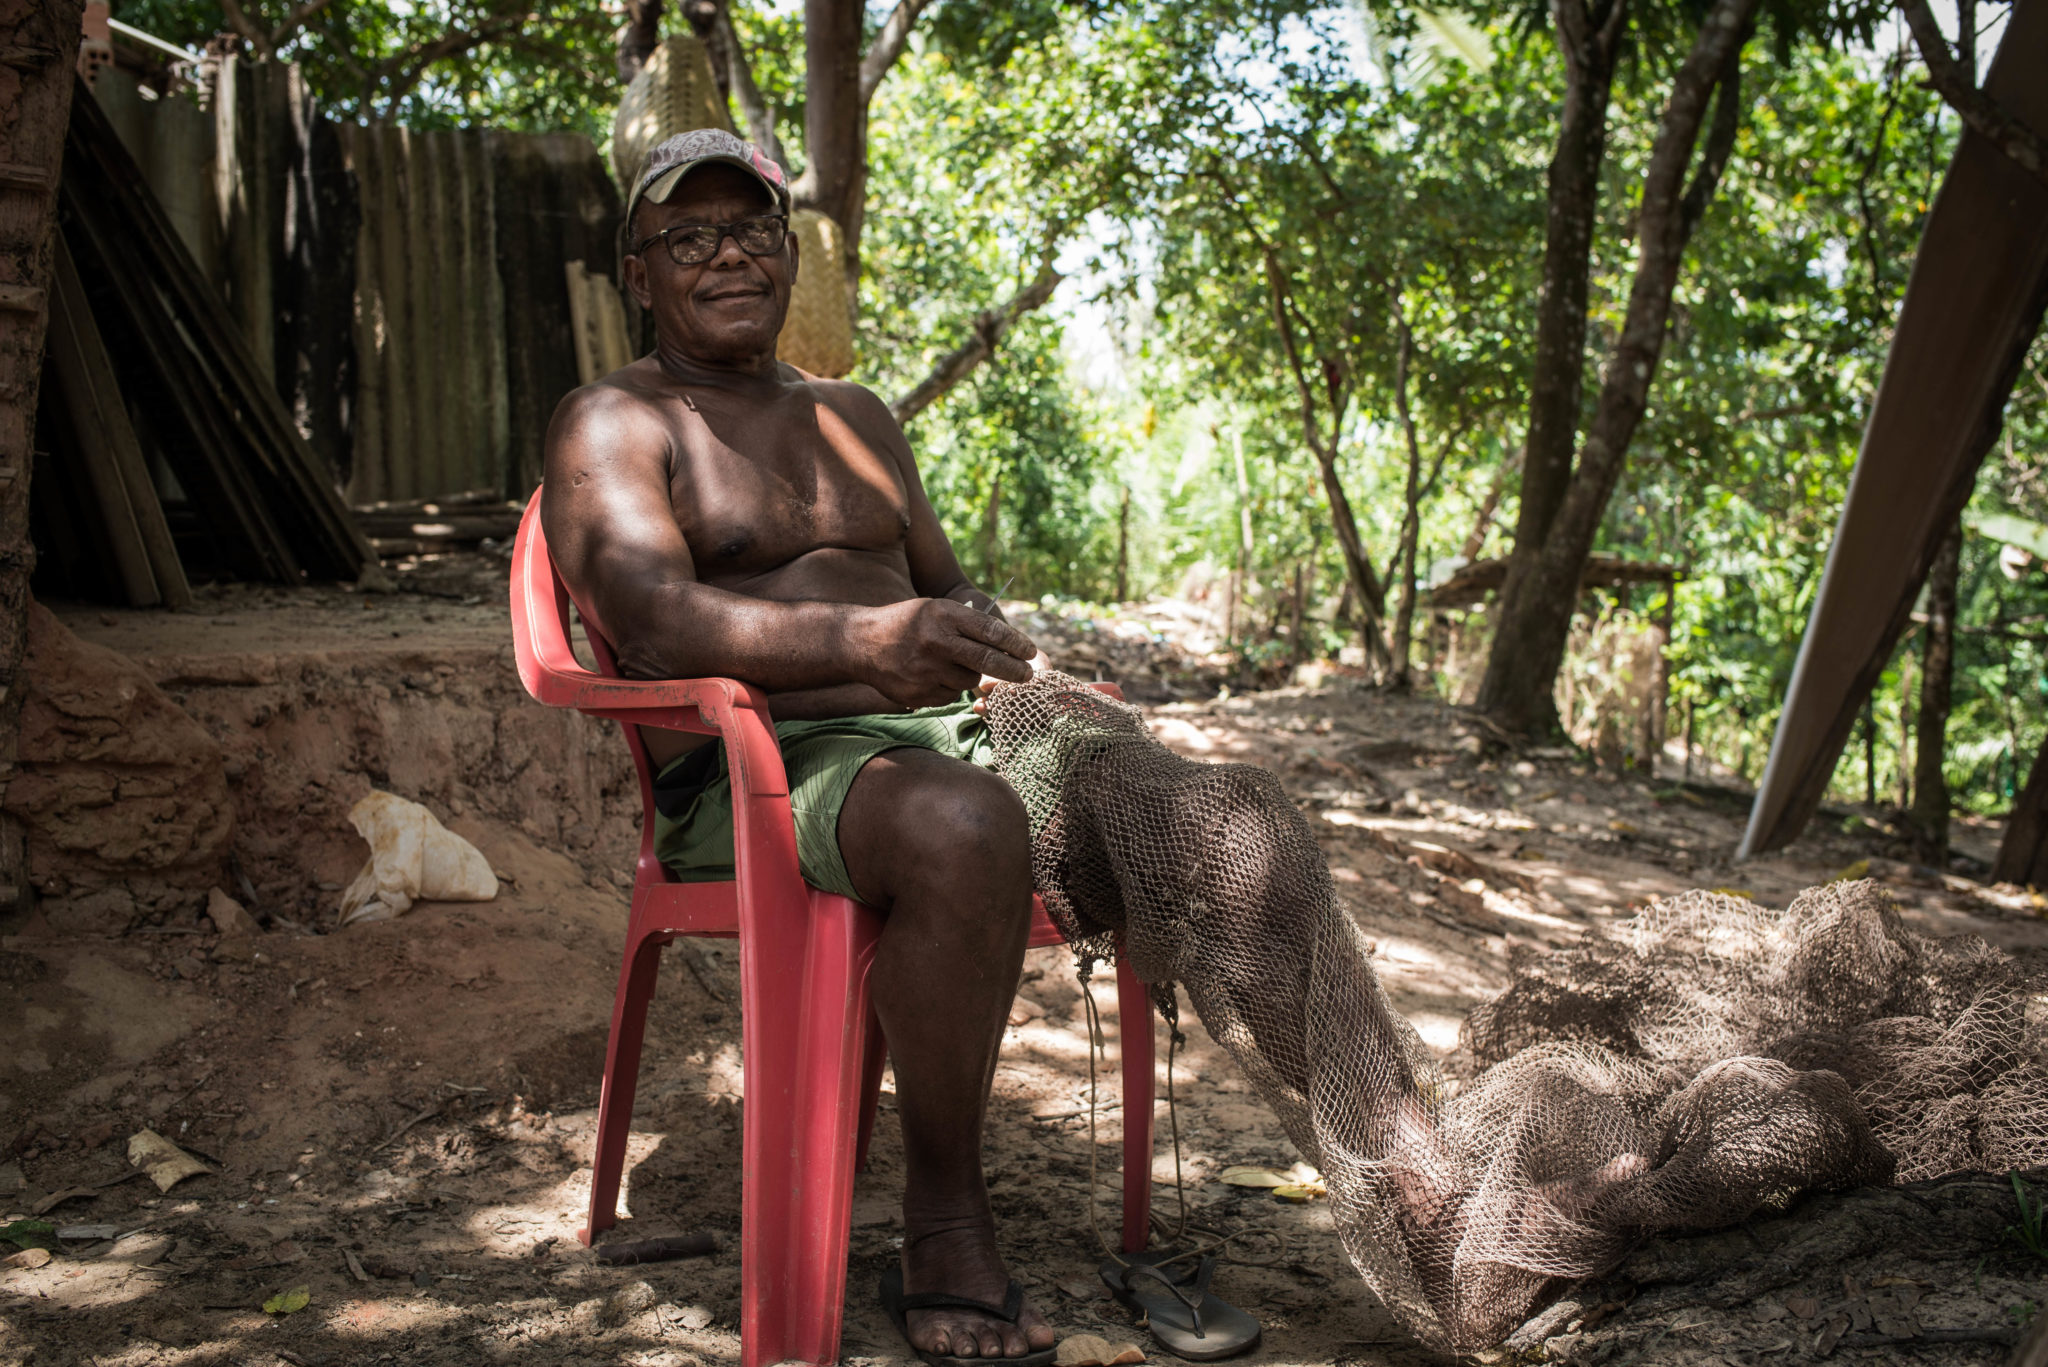 Carlos Augusto Barbosa, a fisher who lives in one of the communities near Cajueiro fixes a net for fishing crab, which are increasingly scarce in the region (image: Ingrid Barros)